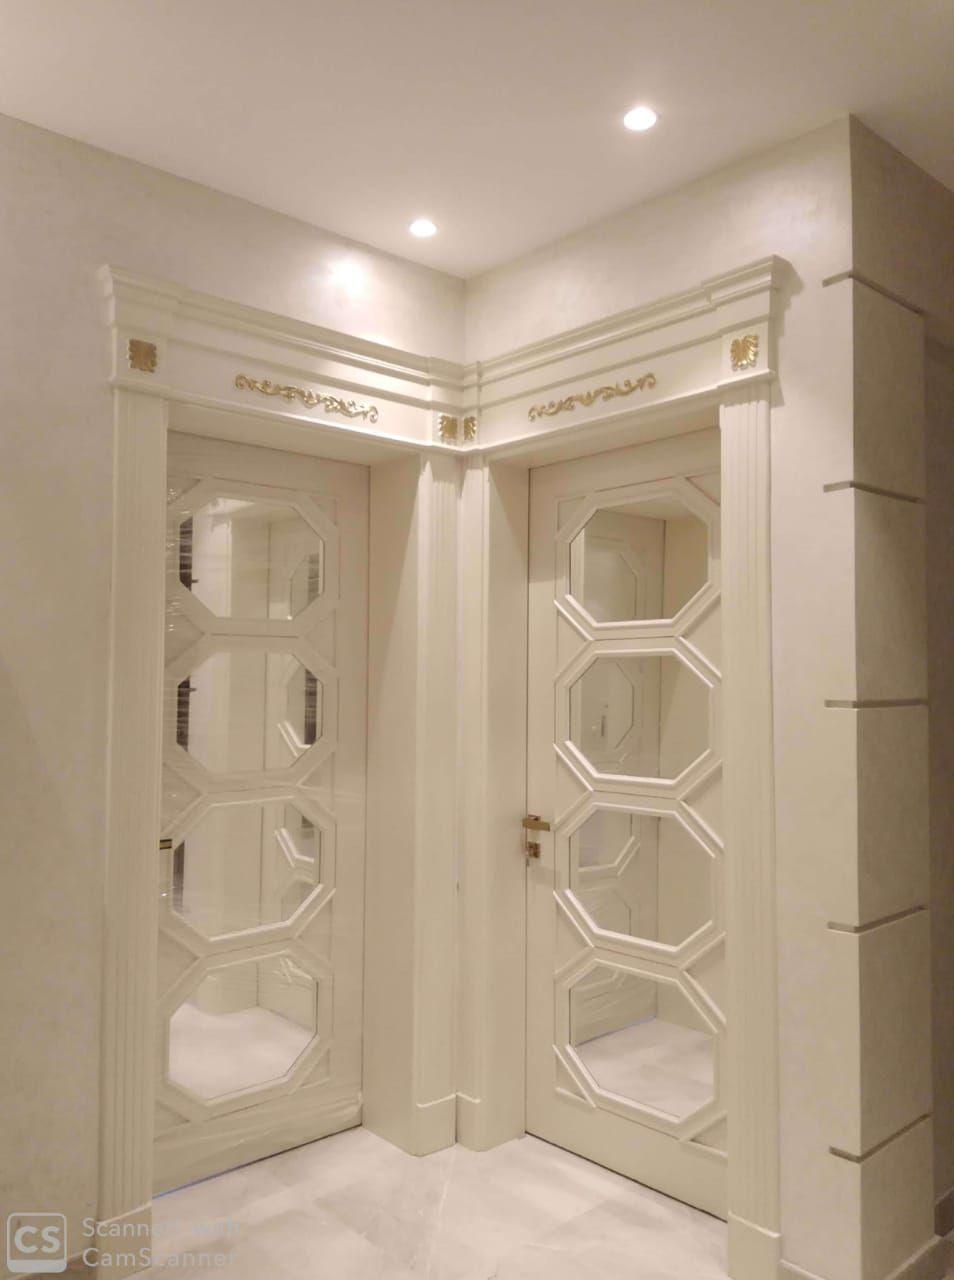 Pin By ايمان ا On ديكور Iron Doors Home Home Decor